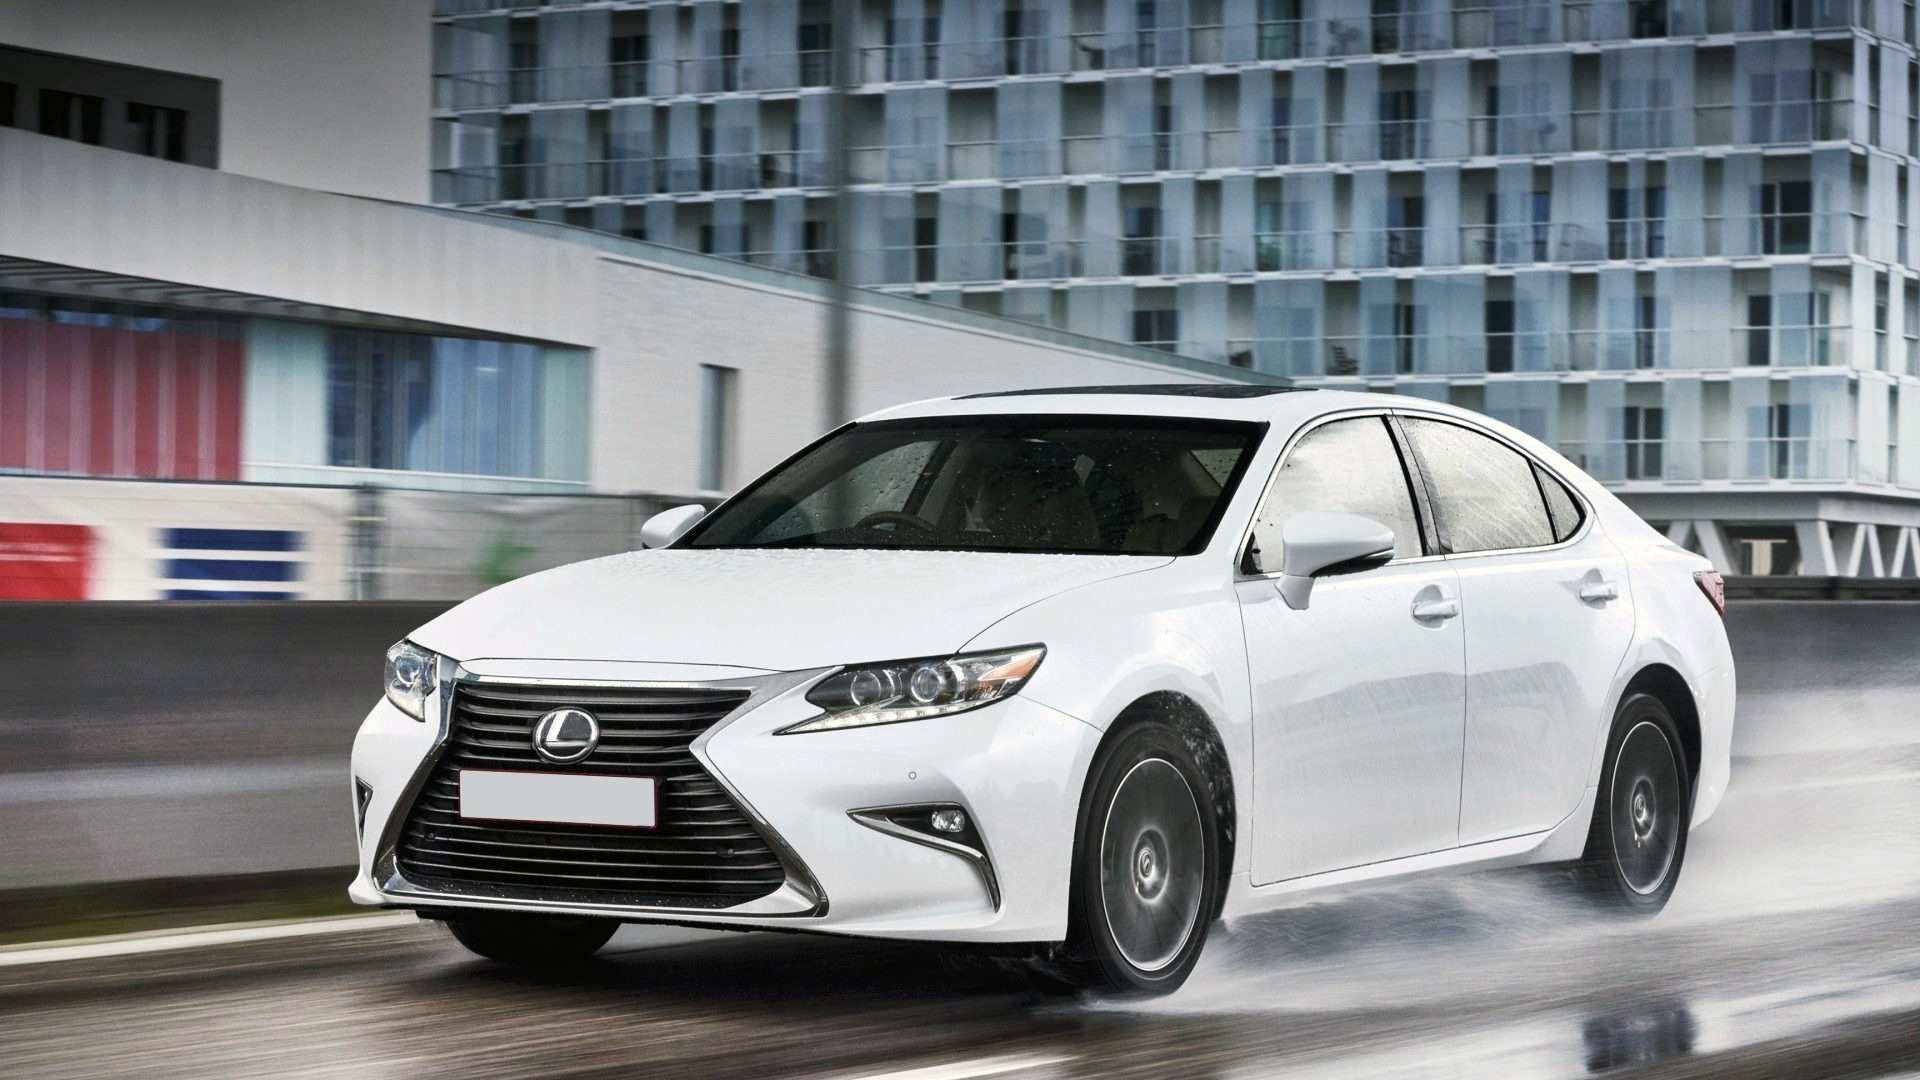 96 New 2019 Lexus IS 250 Research New